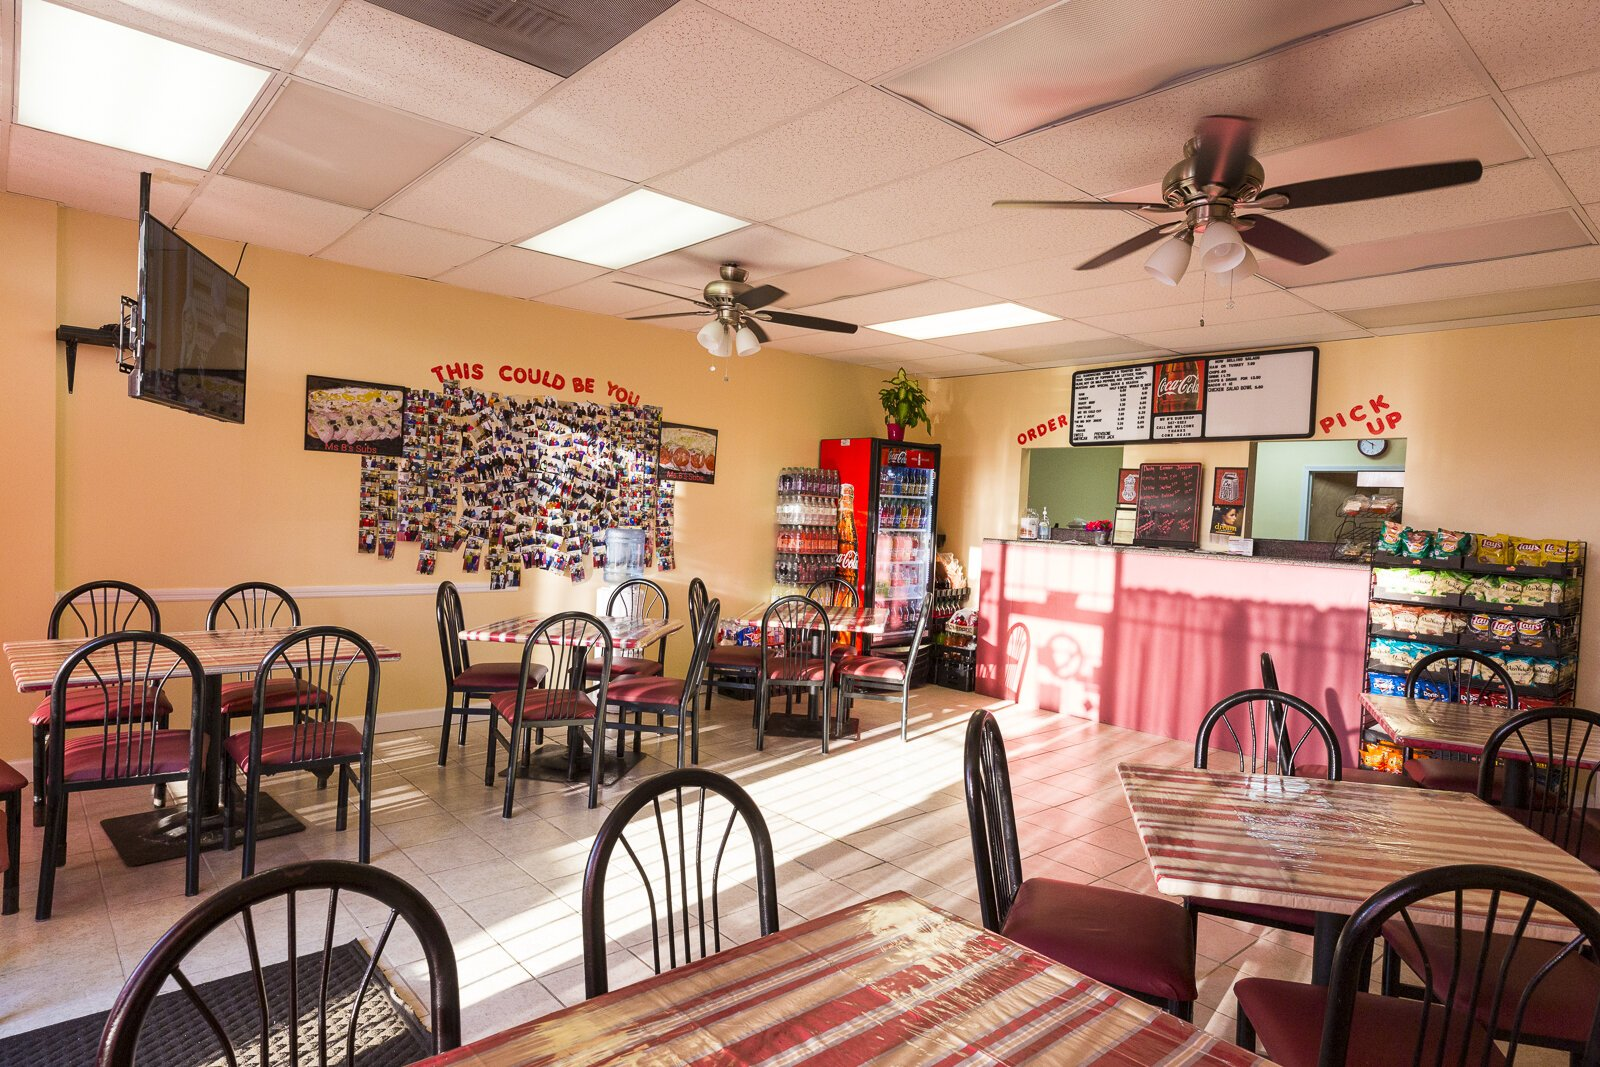 Ms. B's Sub Shop opened in January 2019 and already has a devoted fan base, thanks in large part to co-owner Bonnie Harris's fame as the secret behind the sandwiches at the Super Submarine Sandwich Shop, better known as Chinese Sub Shop. (Ziggy Mack)